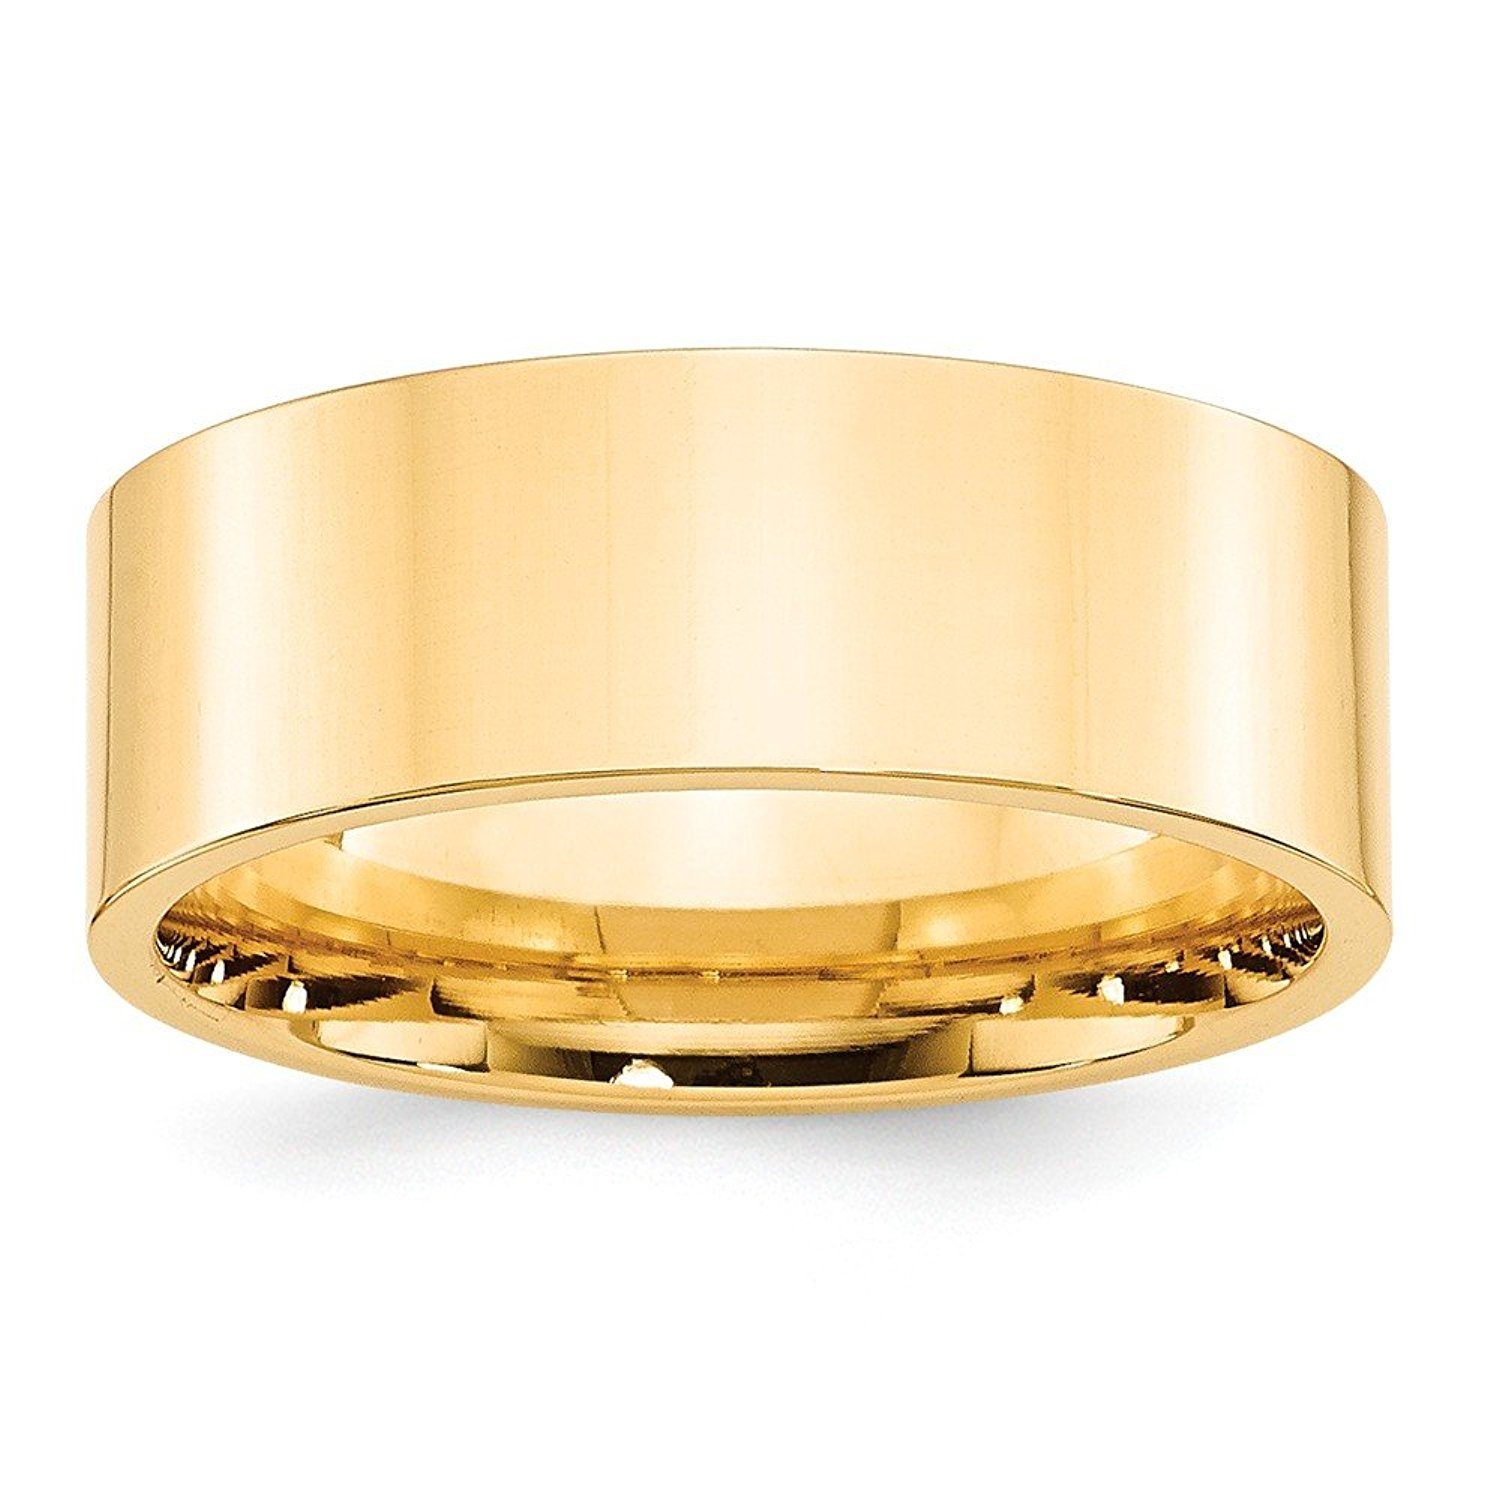 Top 10 Jewelry Gift 14KY 8mm Standard Flat Comfort Fit Band Size 11.5